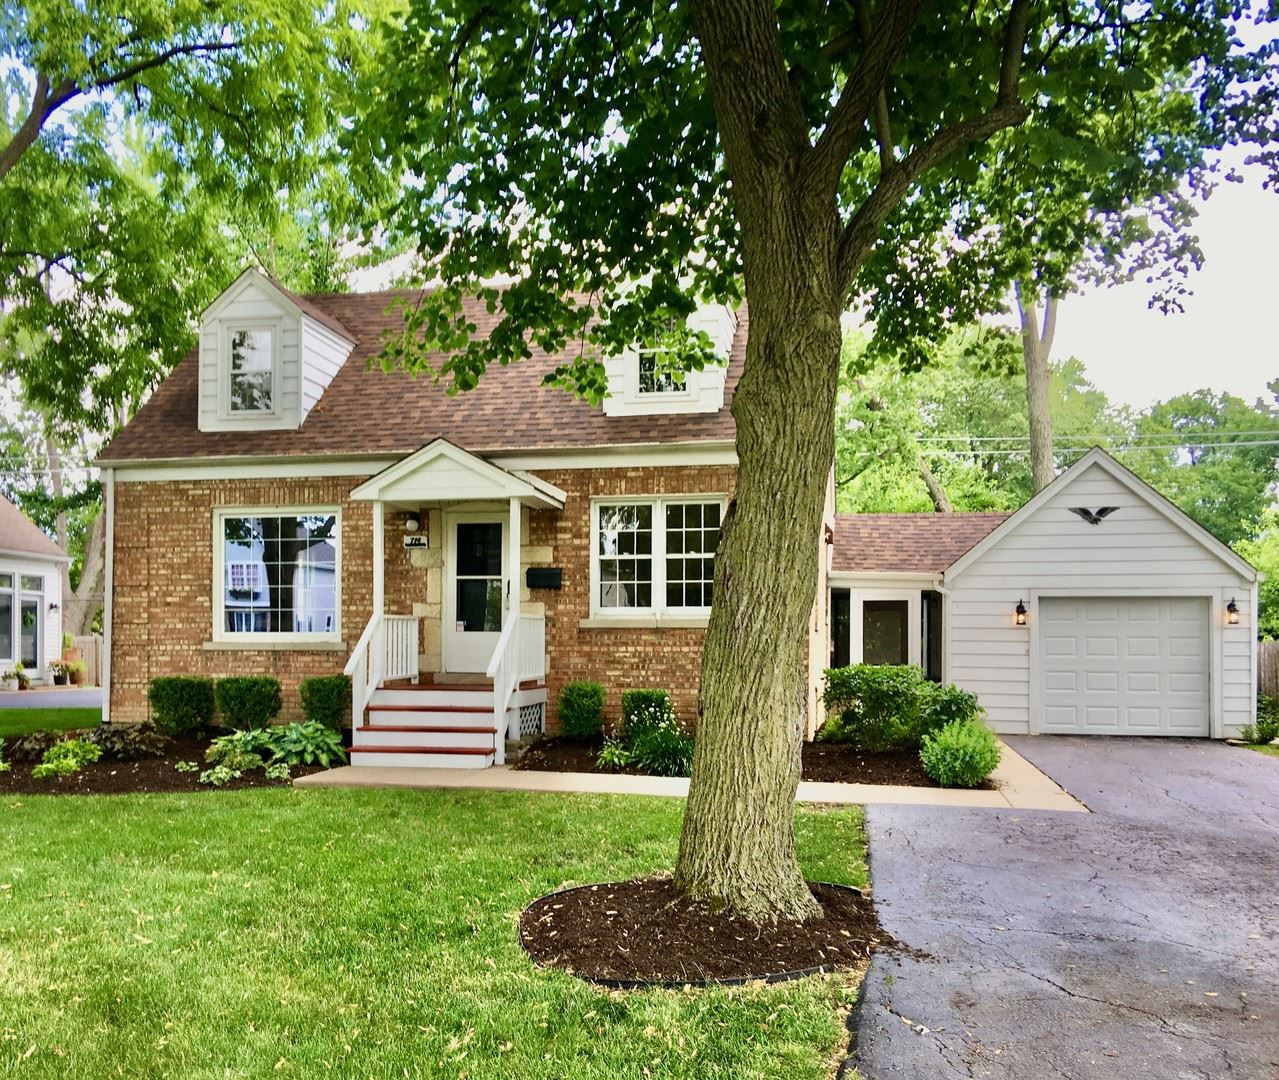 719 N County Line Road, Hinsdale, IL 60521 - MLS#: 10782163